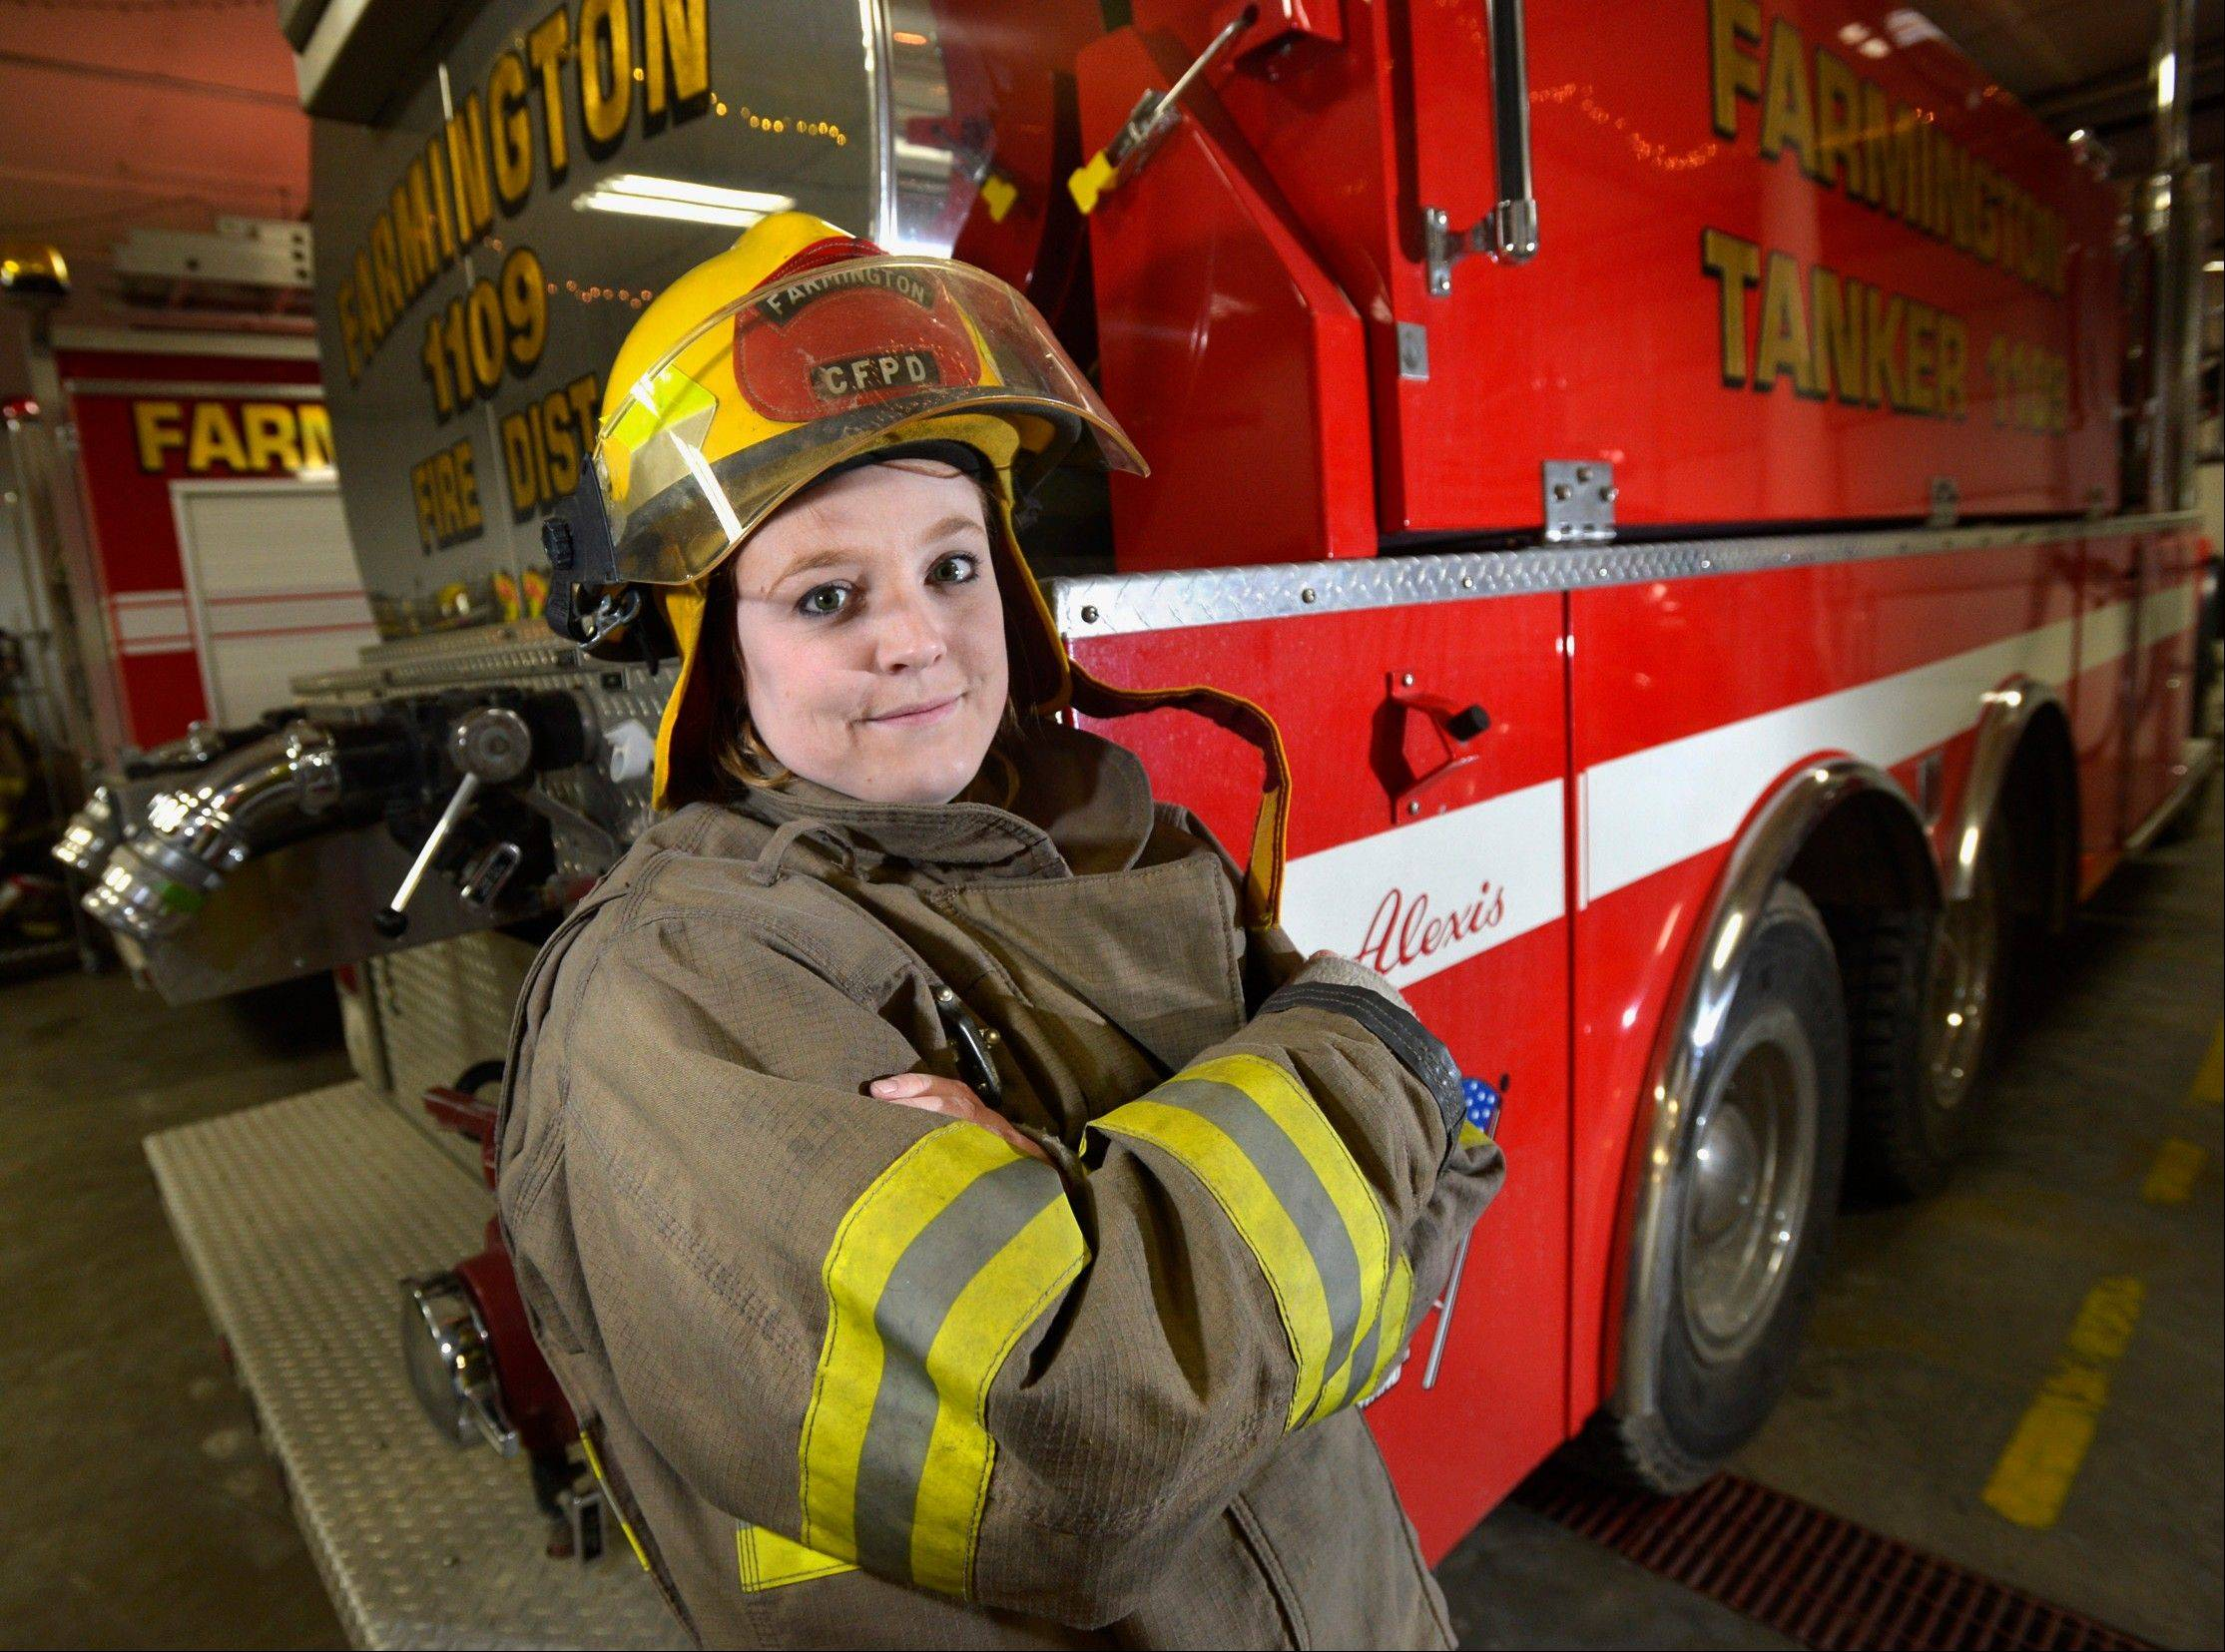 Makensie Balagna, the first female firefighter with the Farmington Fire Department in Farmington, Ill.